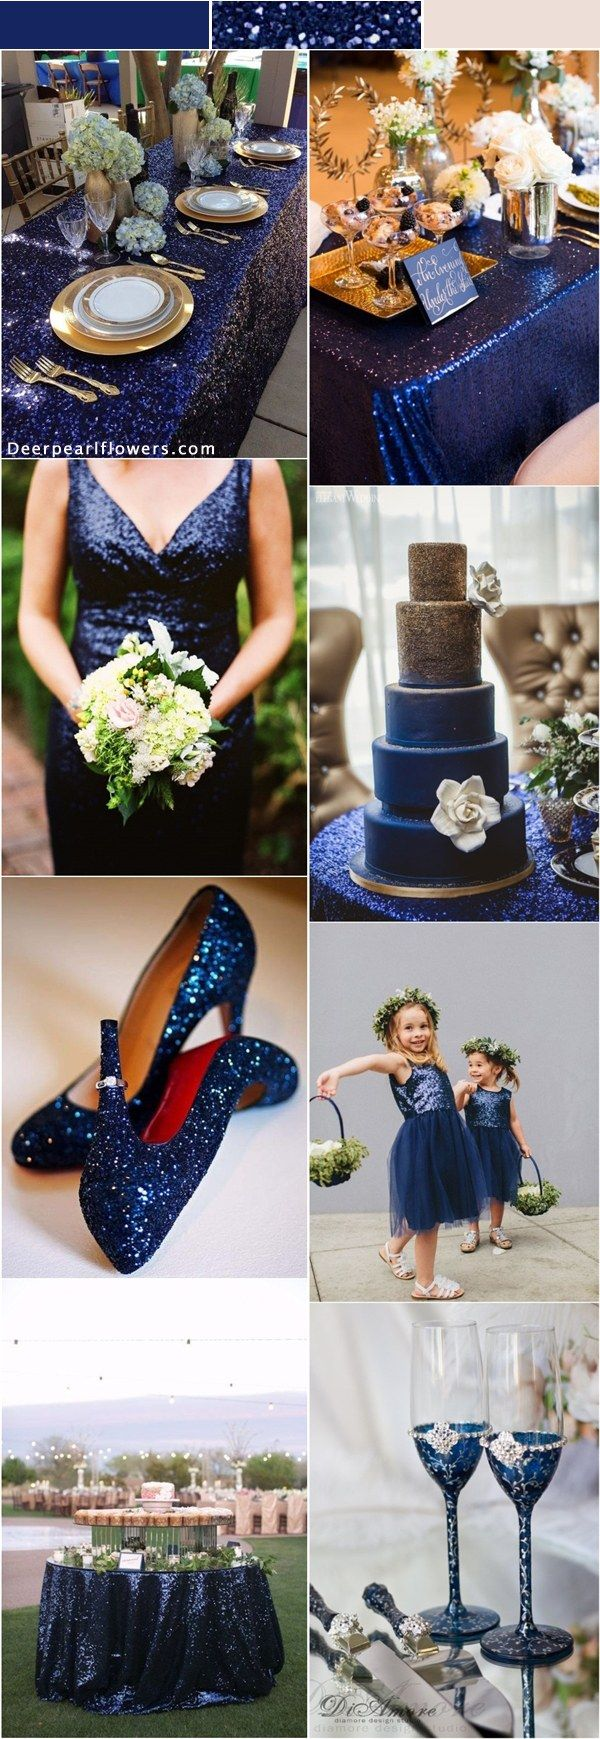 Wedding decorations in nigeria november 2018  best When I get married images on Pinterest  African fashion